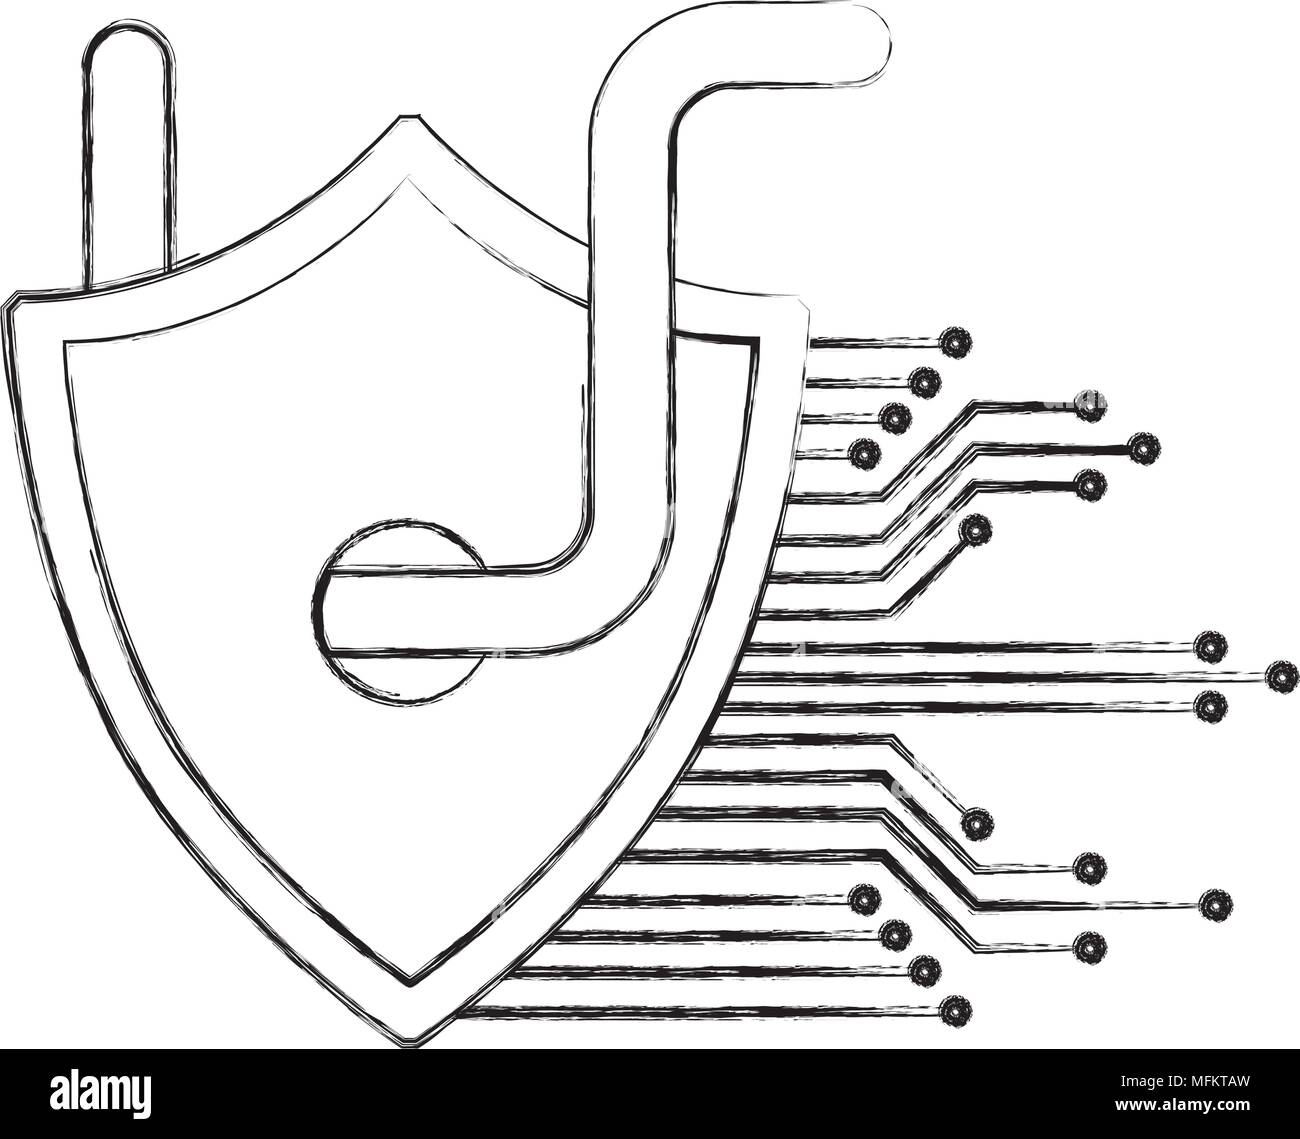 Web Worm Black And White Stock Photos Images Alamy Electronic Mosquito Repellent Circuit Technology Hacking Cyber Security Shield Protection Virus Image